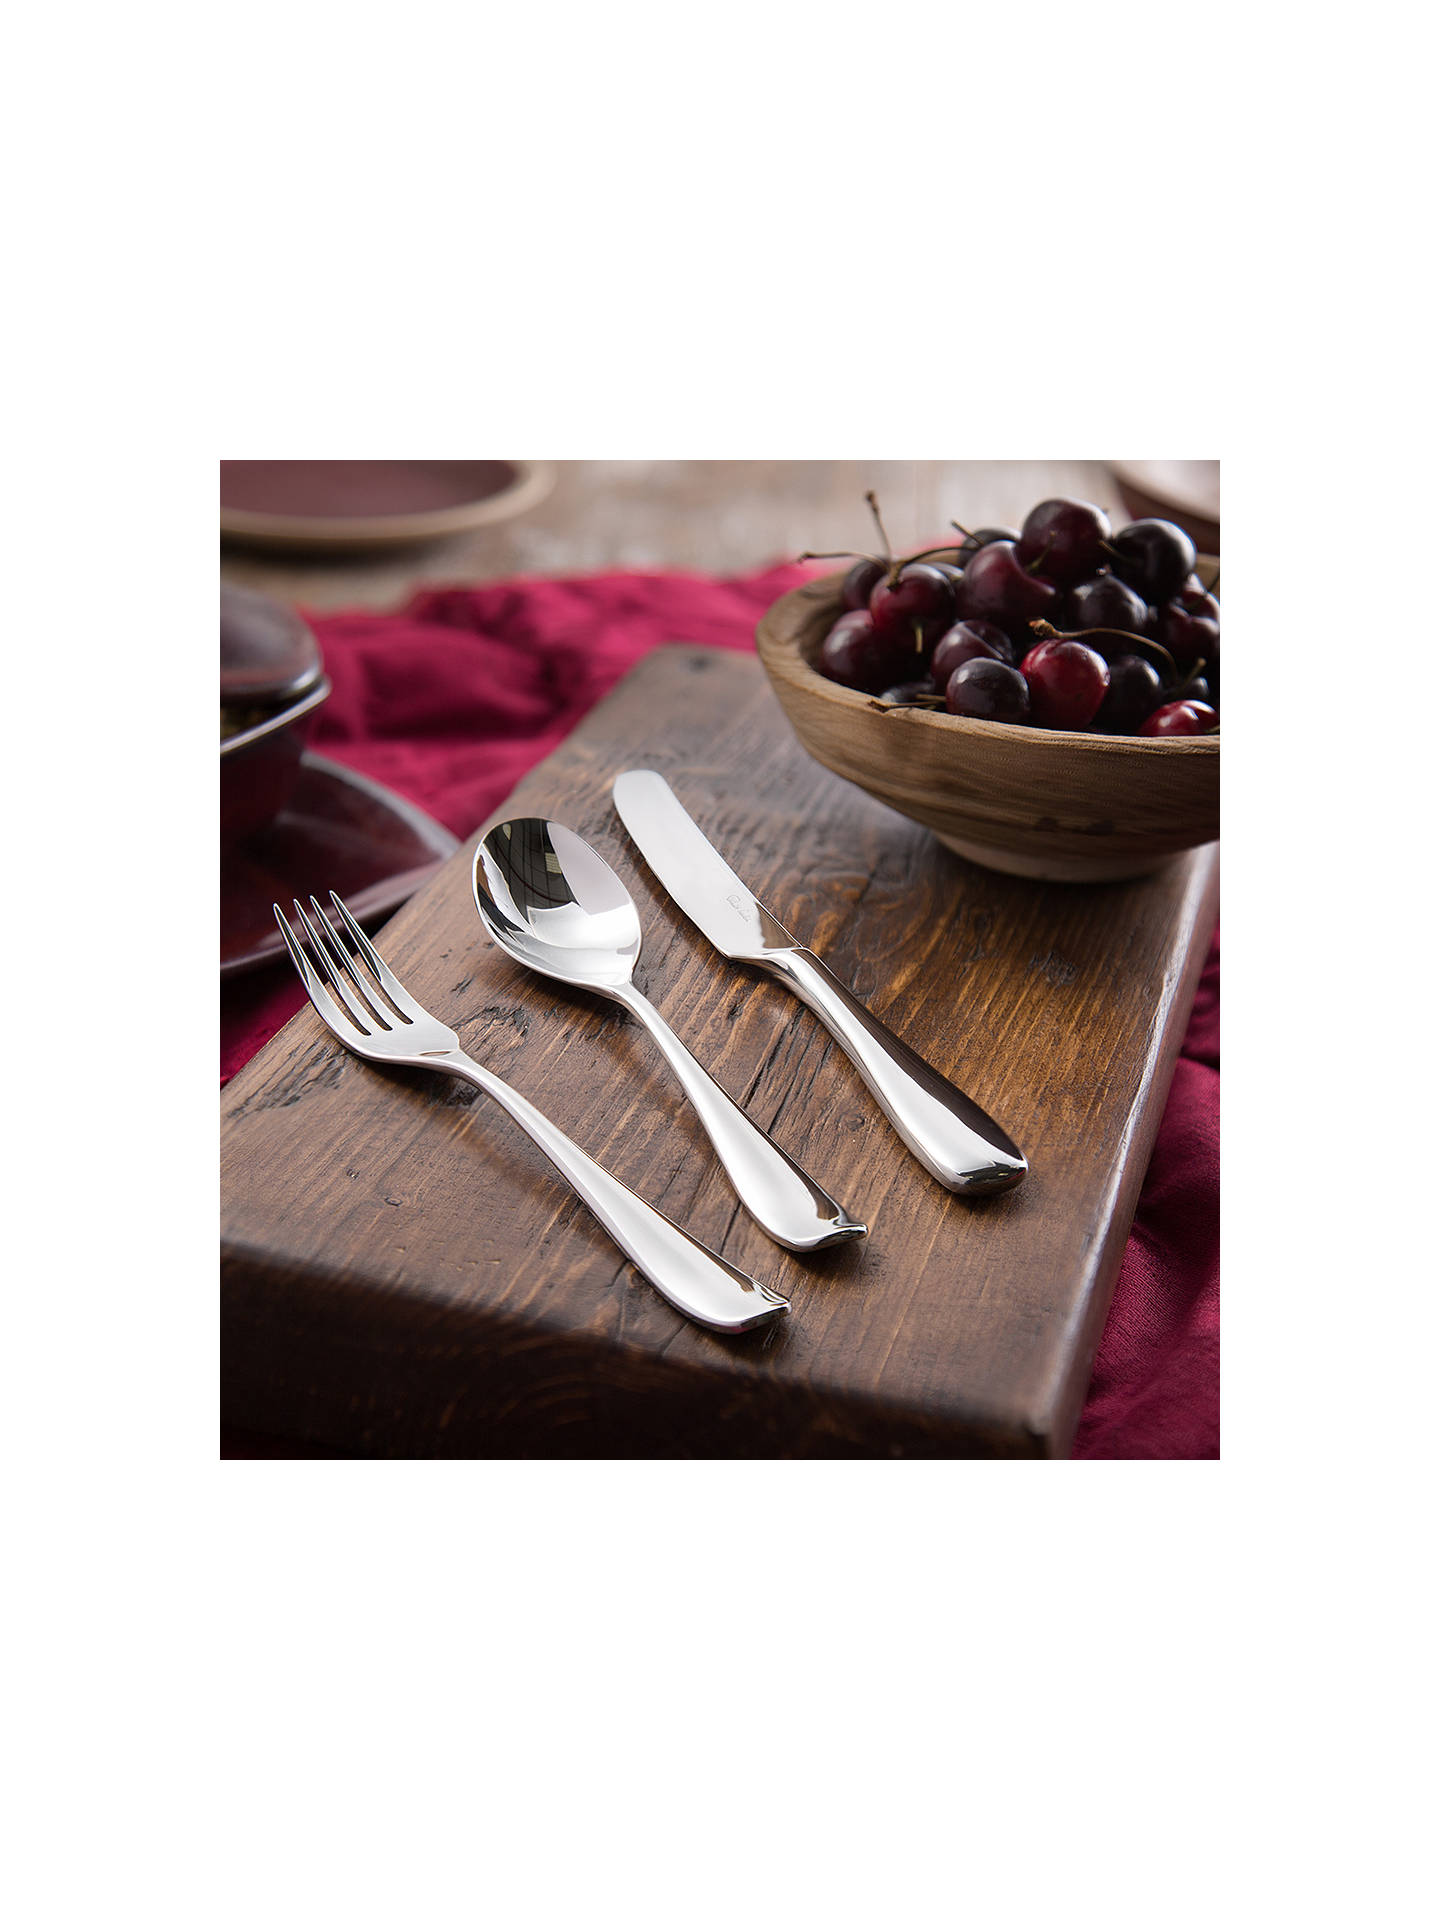 Buy Robert Welch Warwick Place Setting, 7 Piece/1 Place Setting Online at johnlewis.com